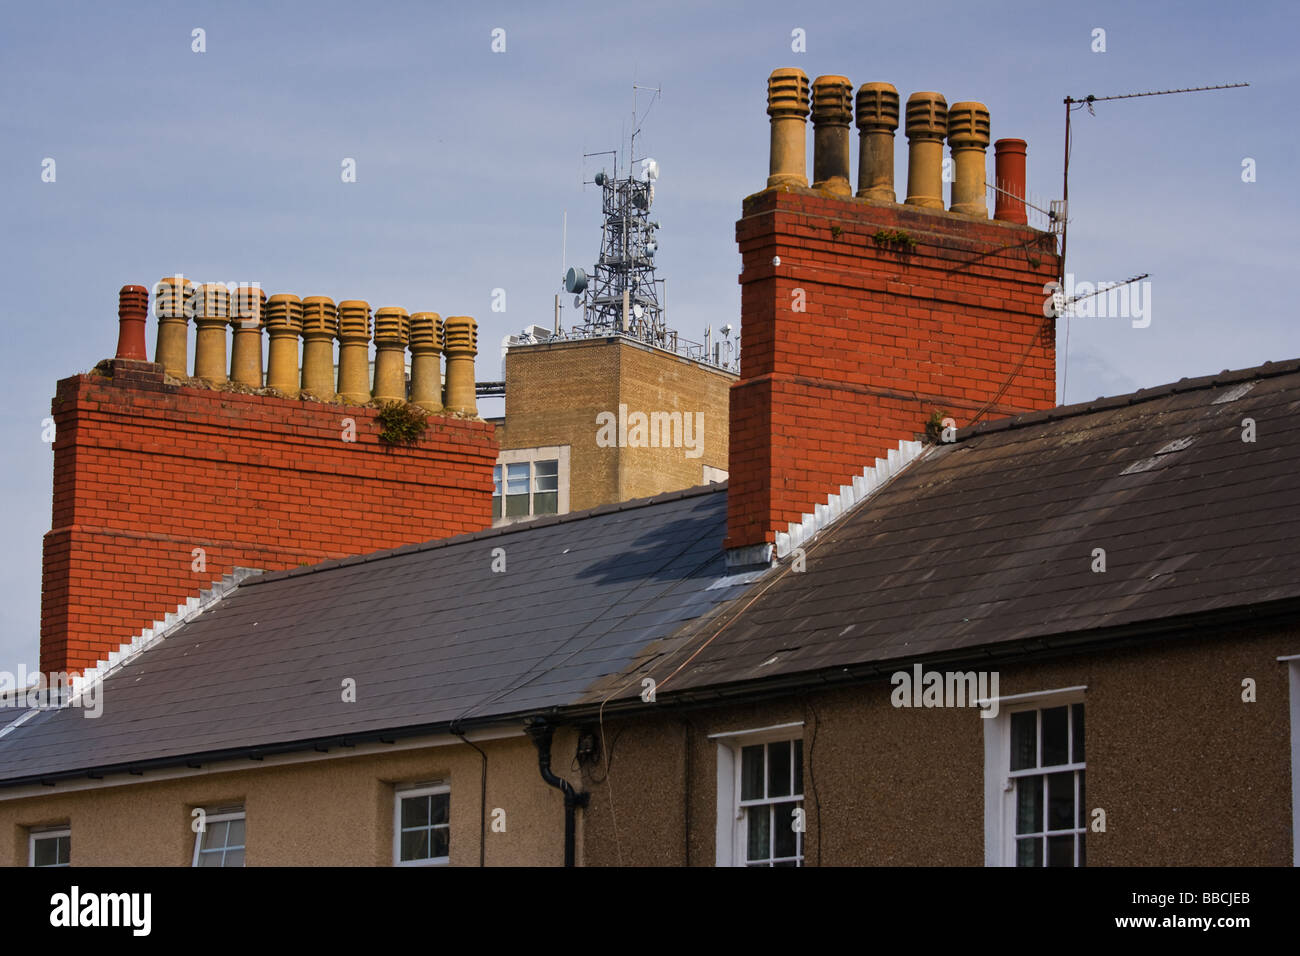 Roof tops with aerials - Stock Image